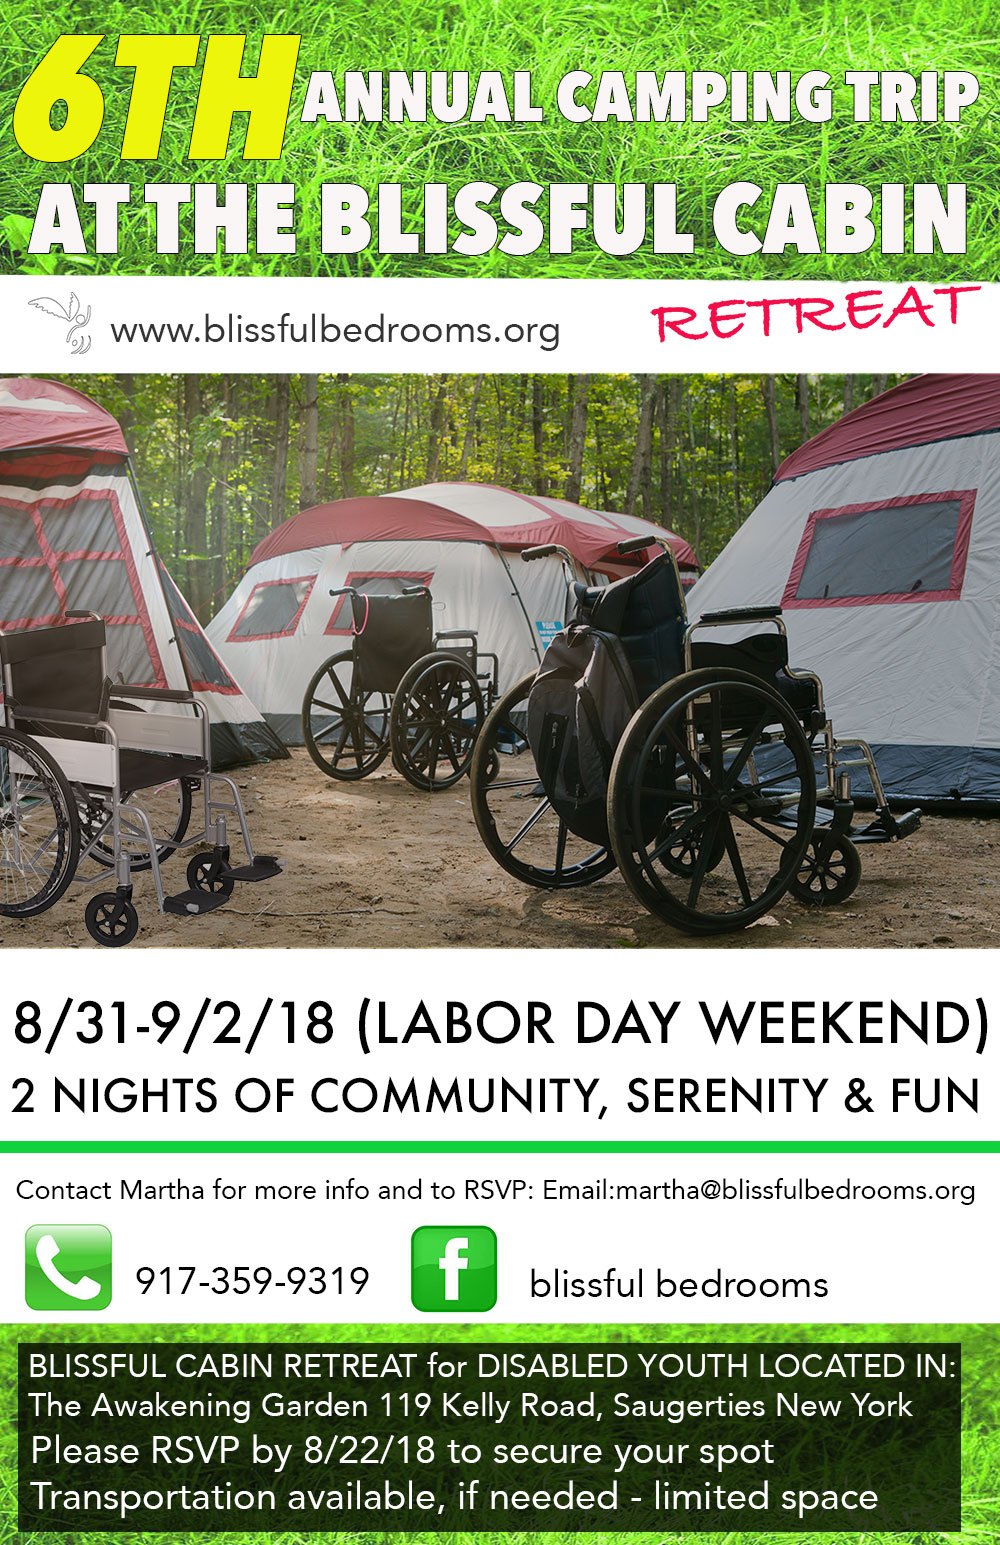 BLISSFUL-BEDROOMS-6TH-ANNUAL-CAMPING-TRIP-FLYER-